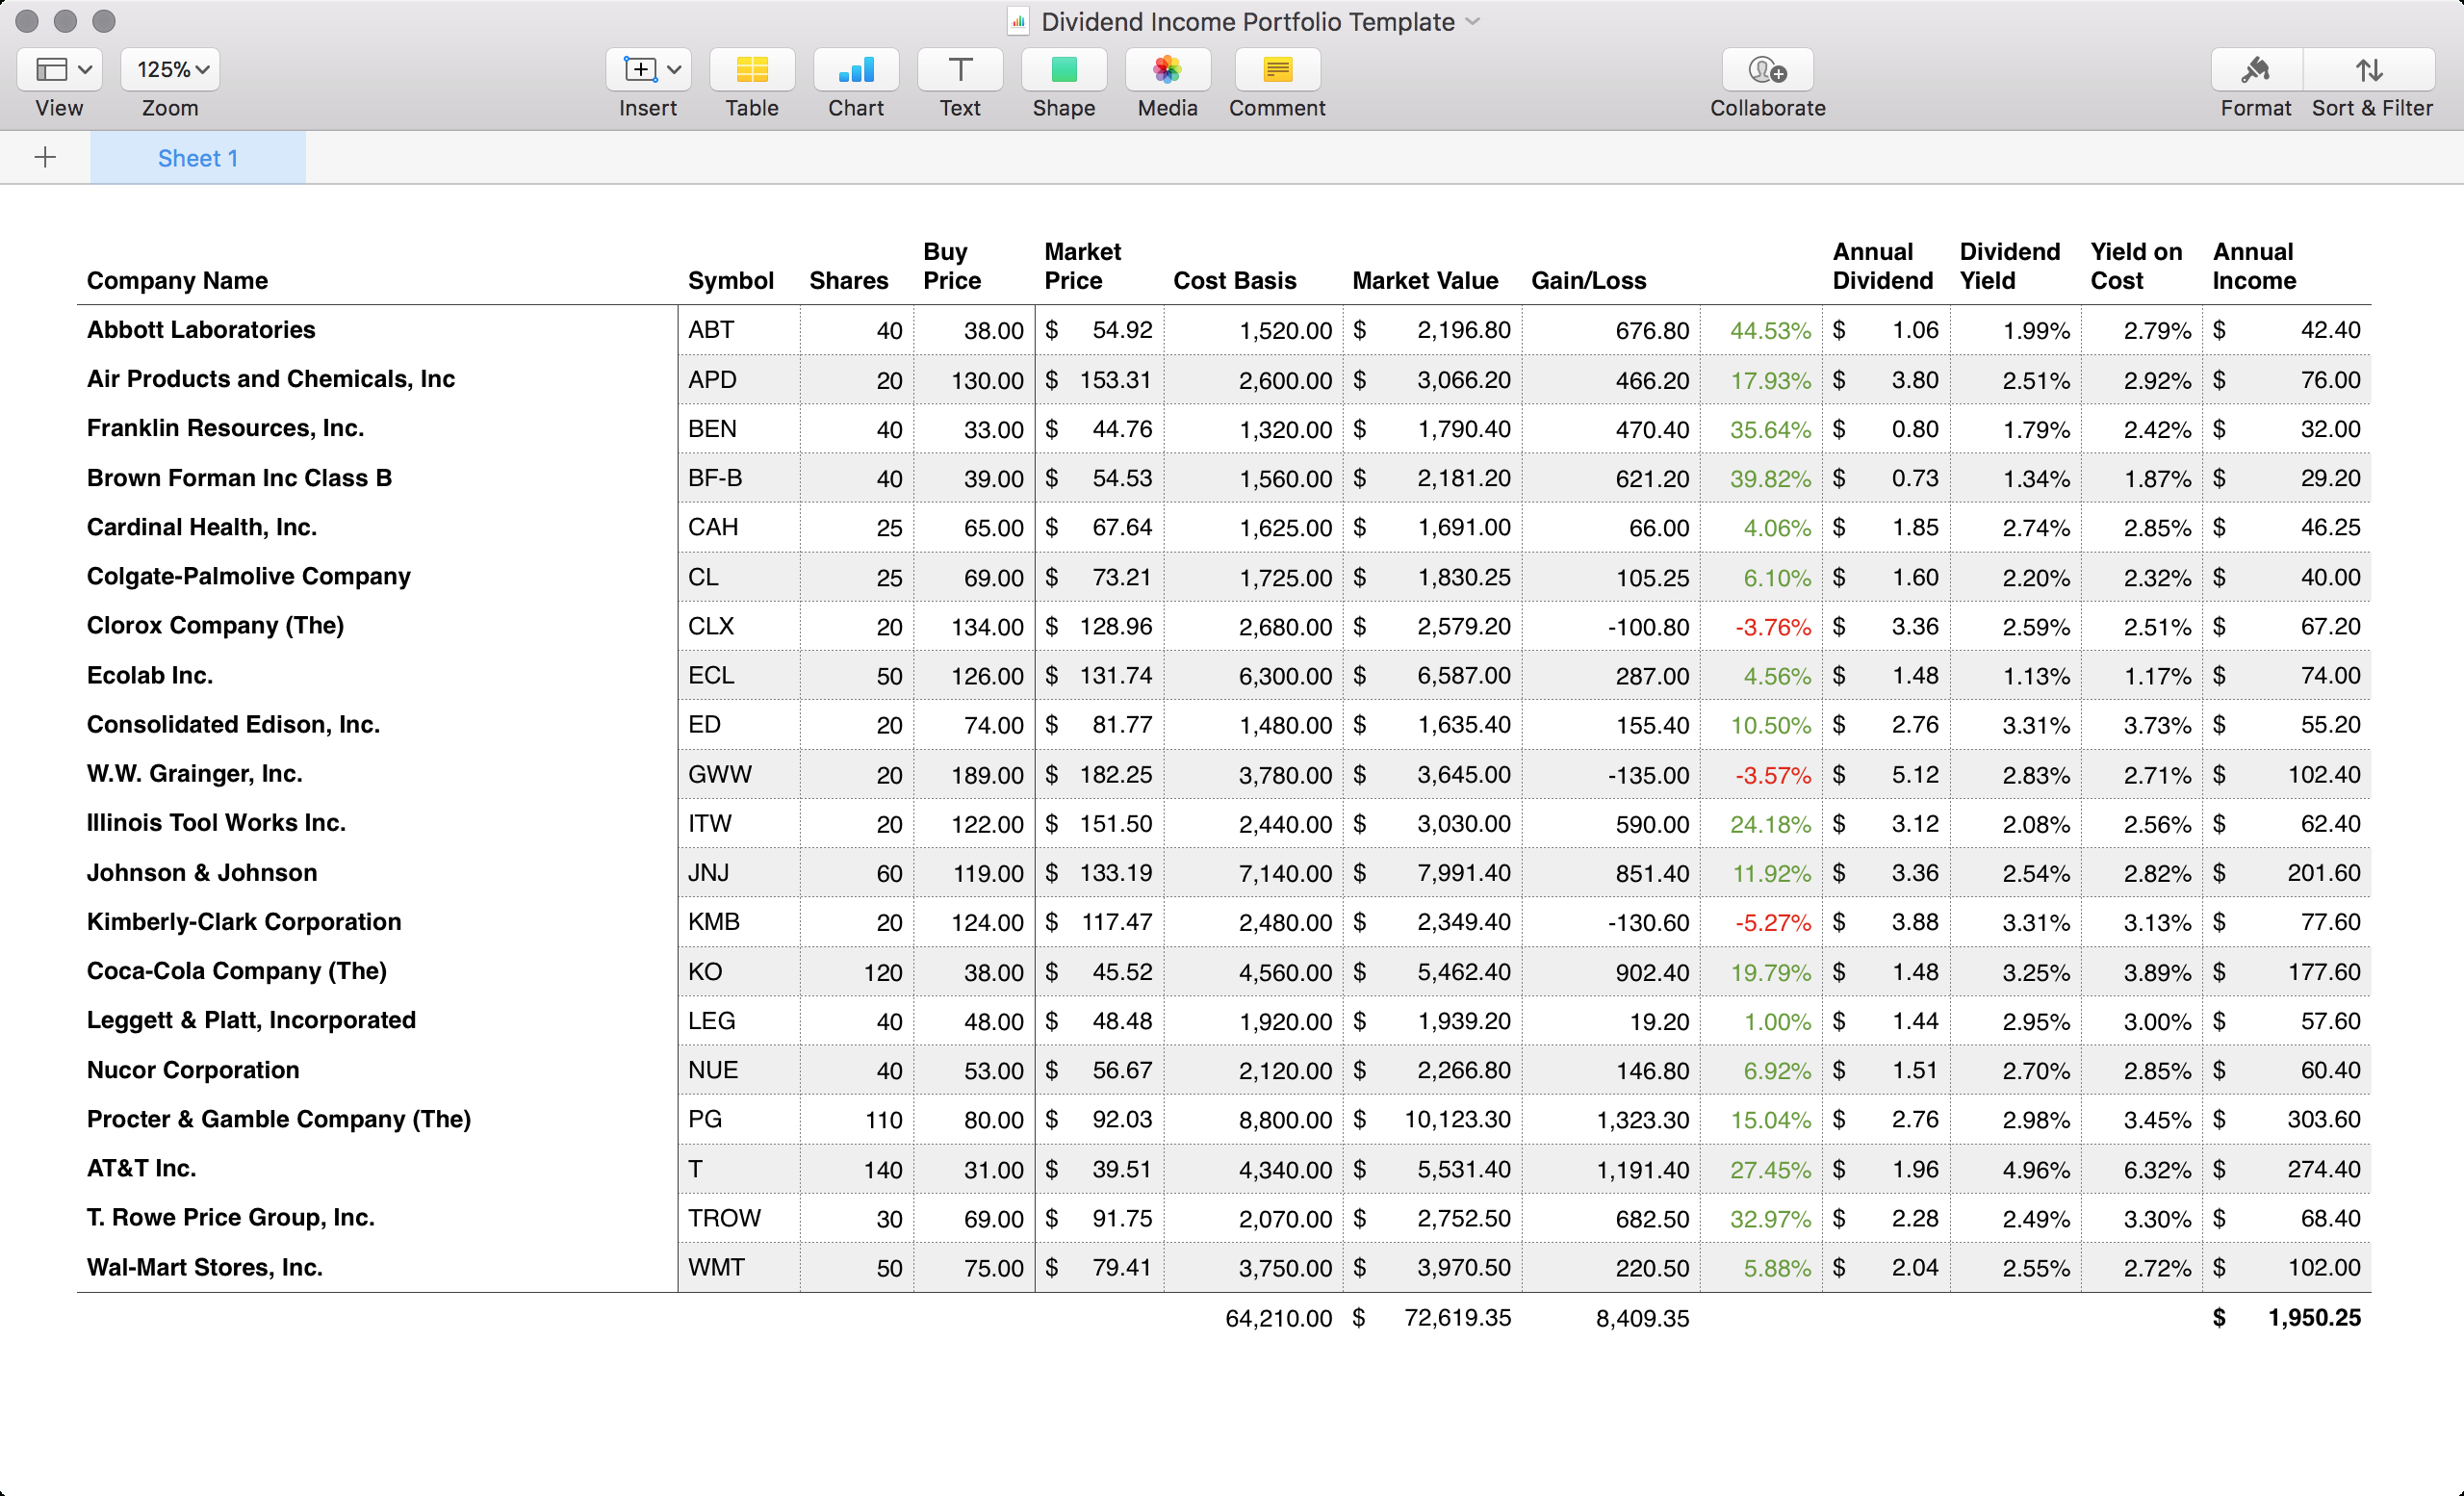 Dividend Spreadsheet Templates Pertaining To Dividend Income Portfolio Template For Apple Numbers